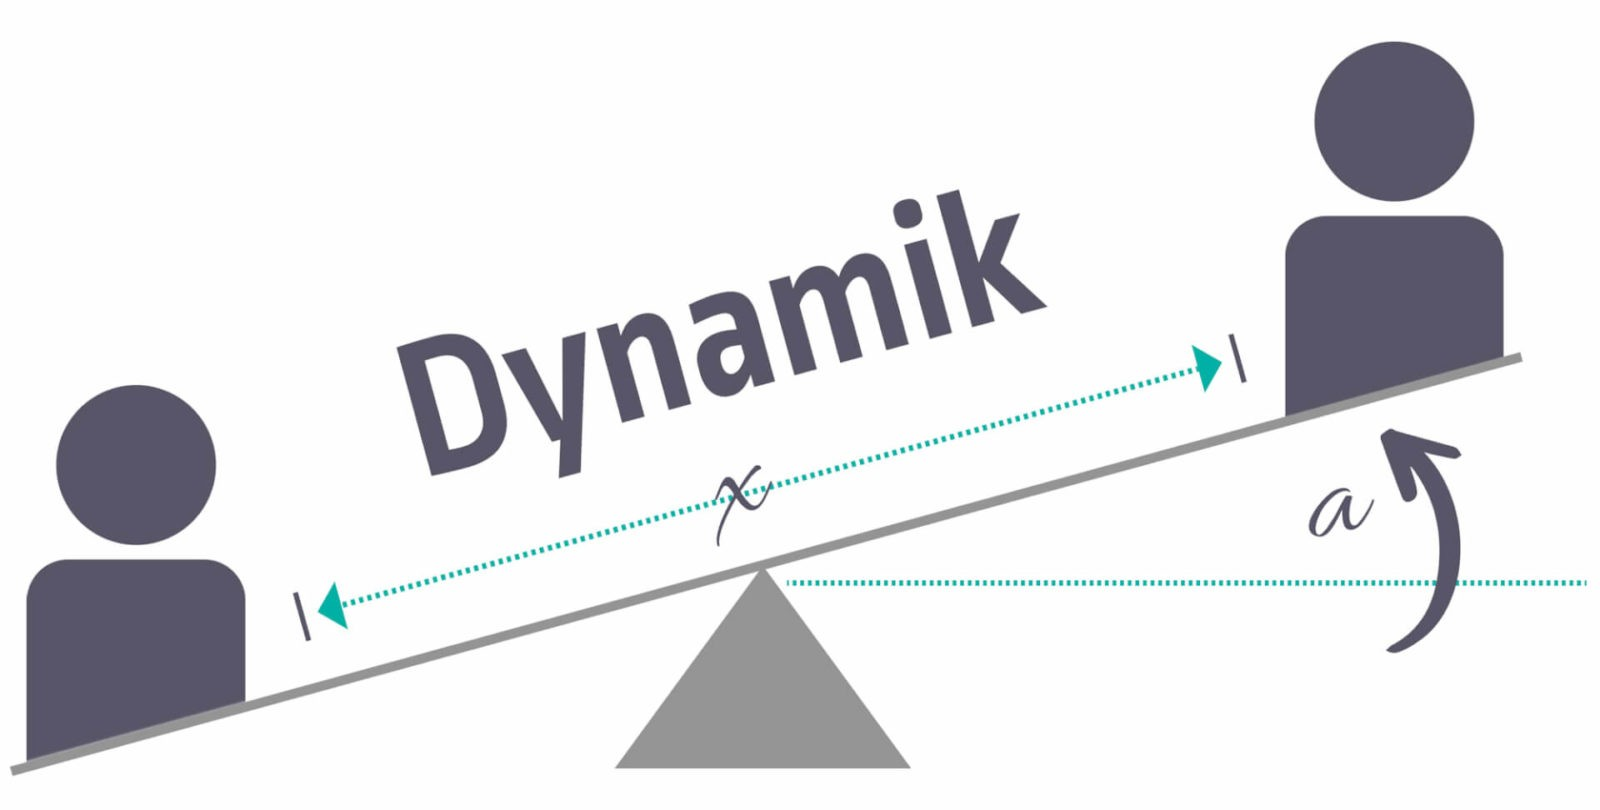 Dynamik in der Kommunikation